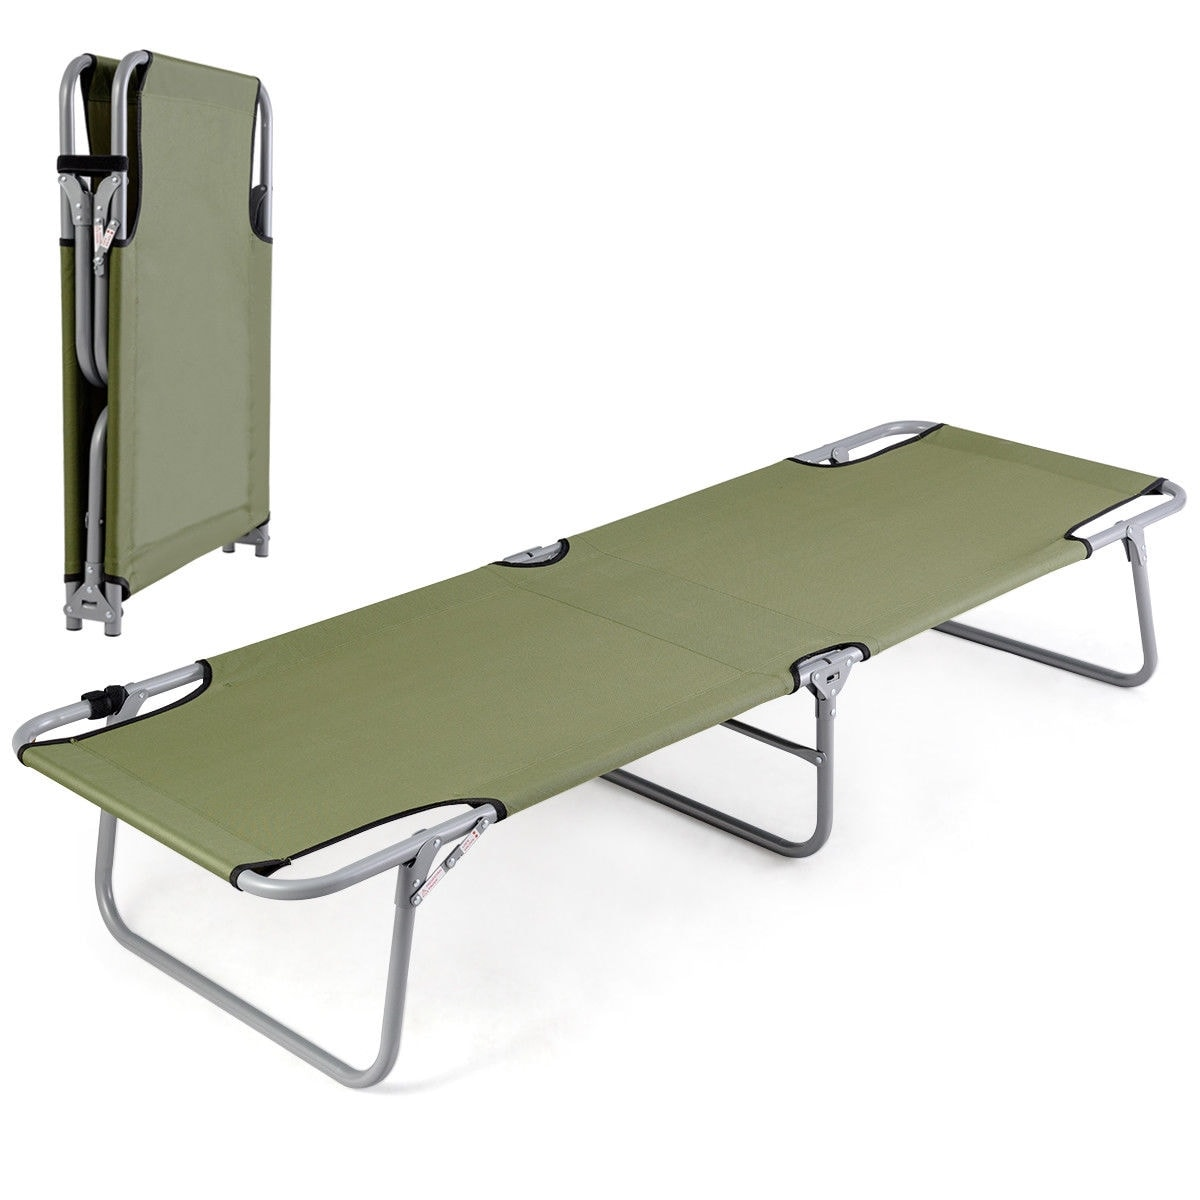 - Shop Portable Foldable Camping Bed Army Military Camping Cot Hiking Outdoor  - Overstock - 22546833